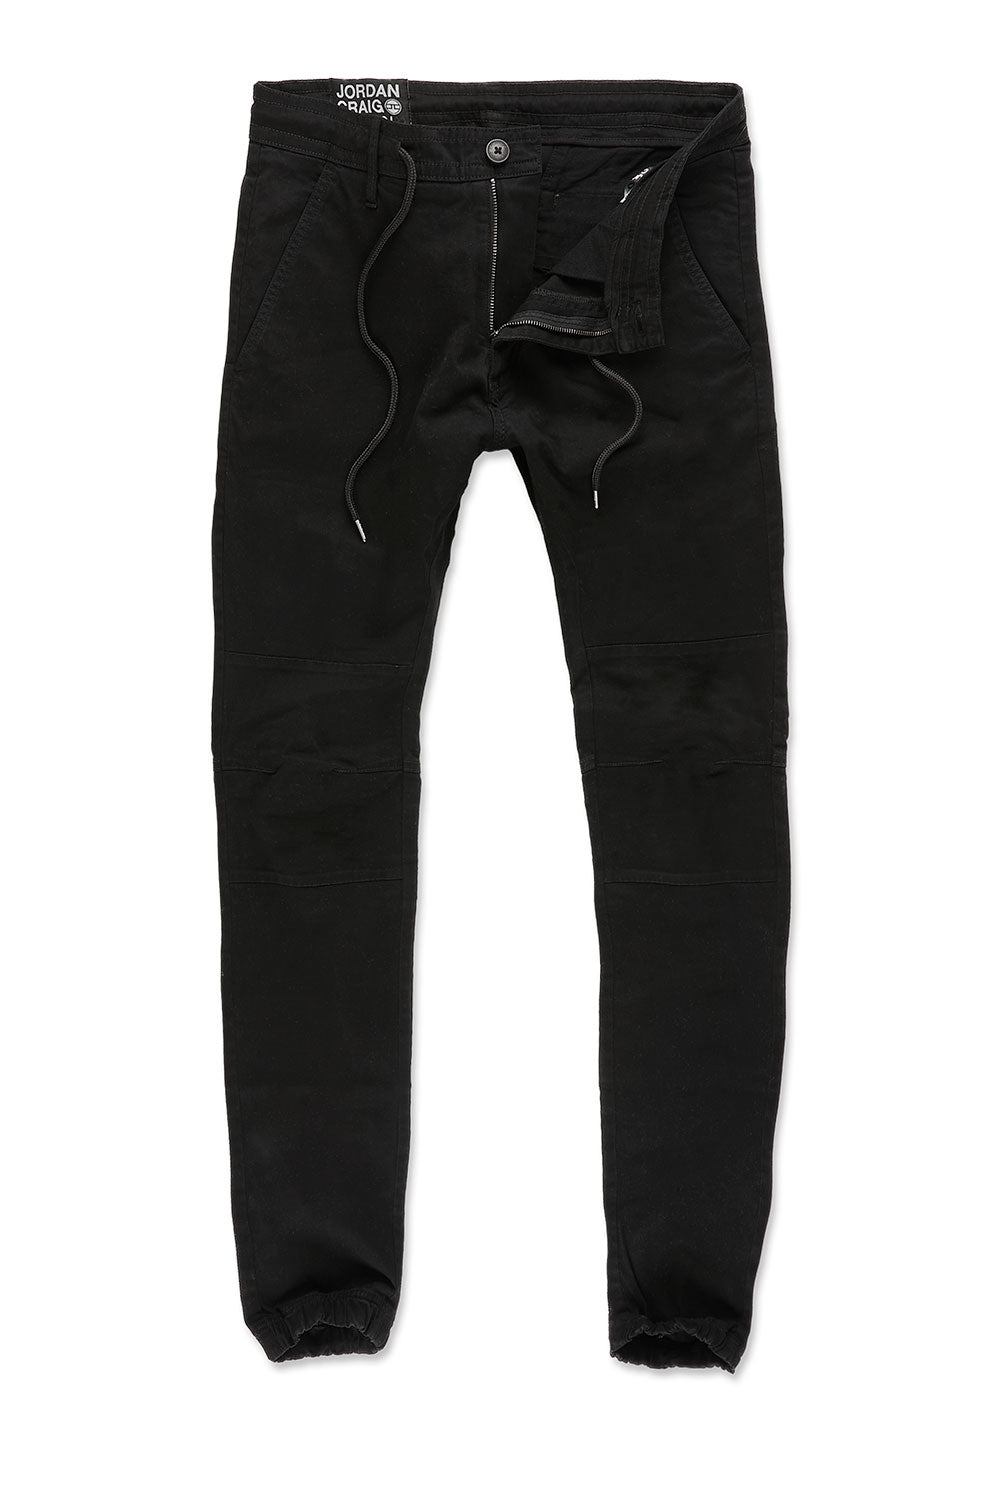 Sean - Stacked Chino Joggers (Black)